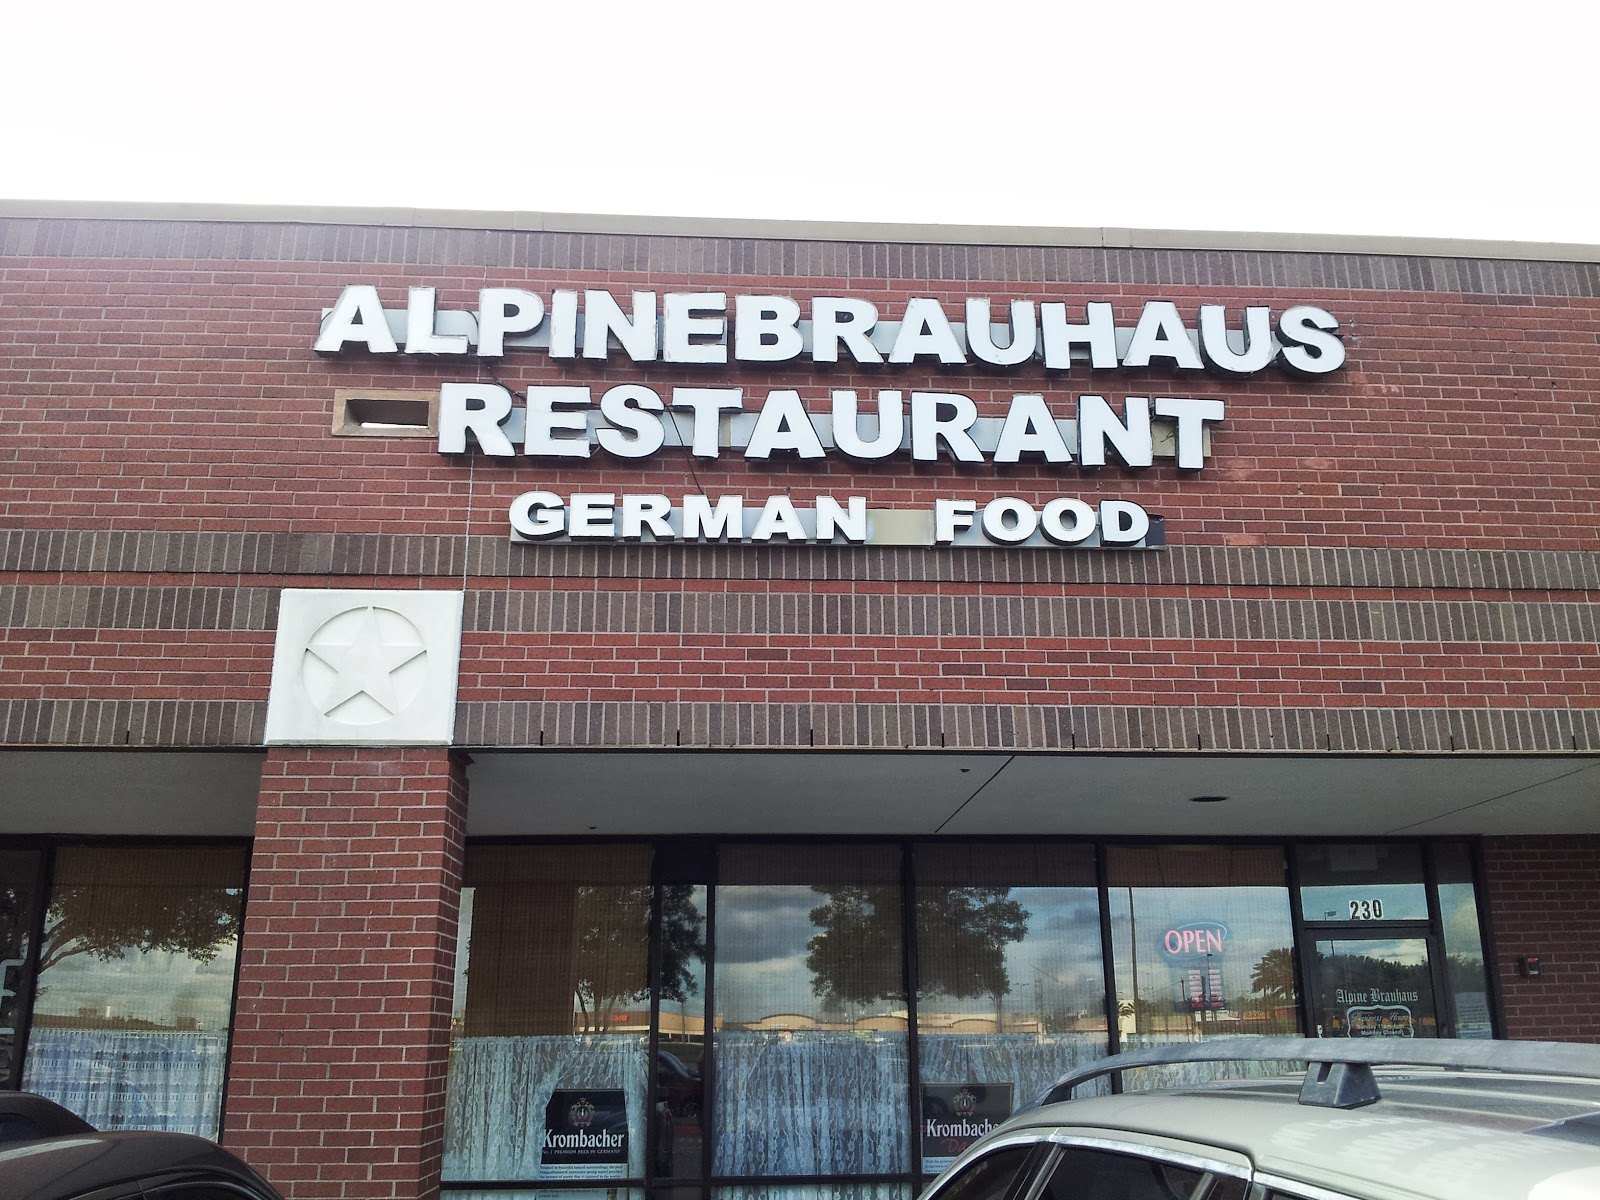 A Small Unuming Restaurant Located In Nearby Strip Mall Has Come To My Attention Nothing Too Unusual About That You Say There Are Restaurants